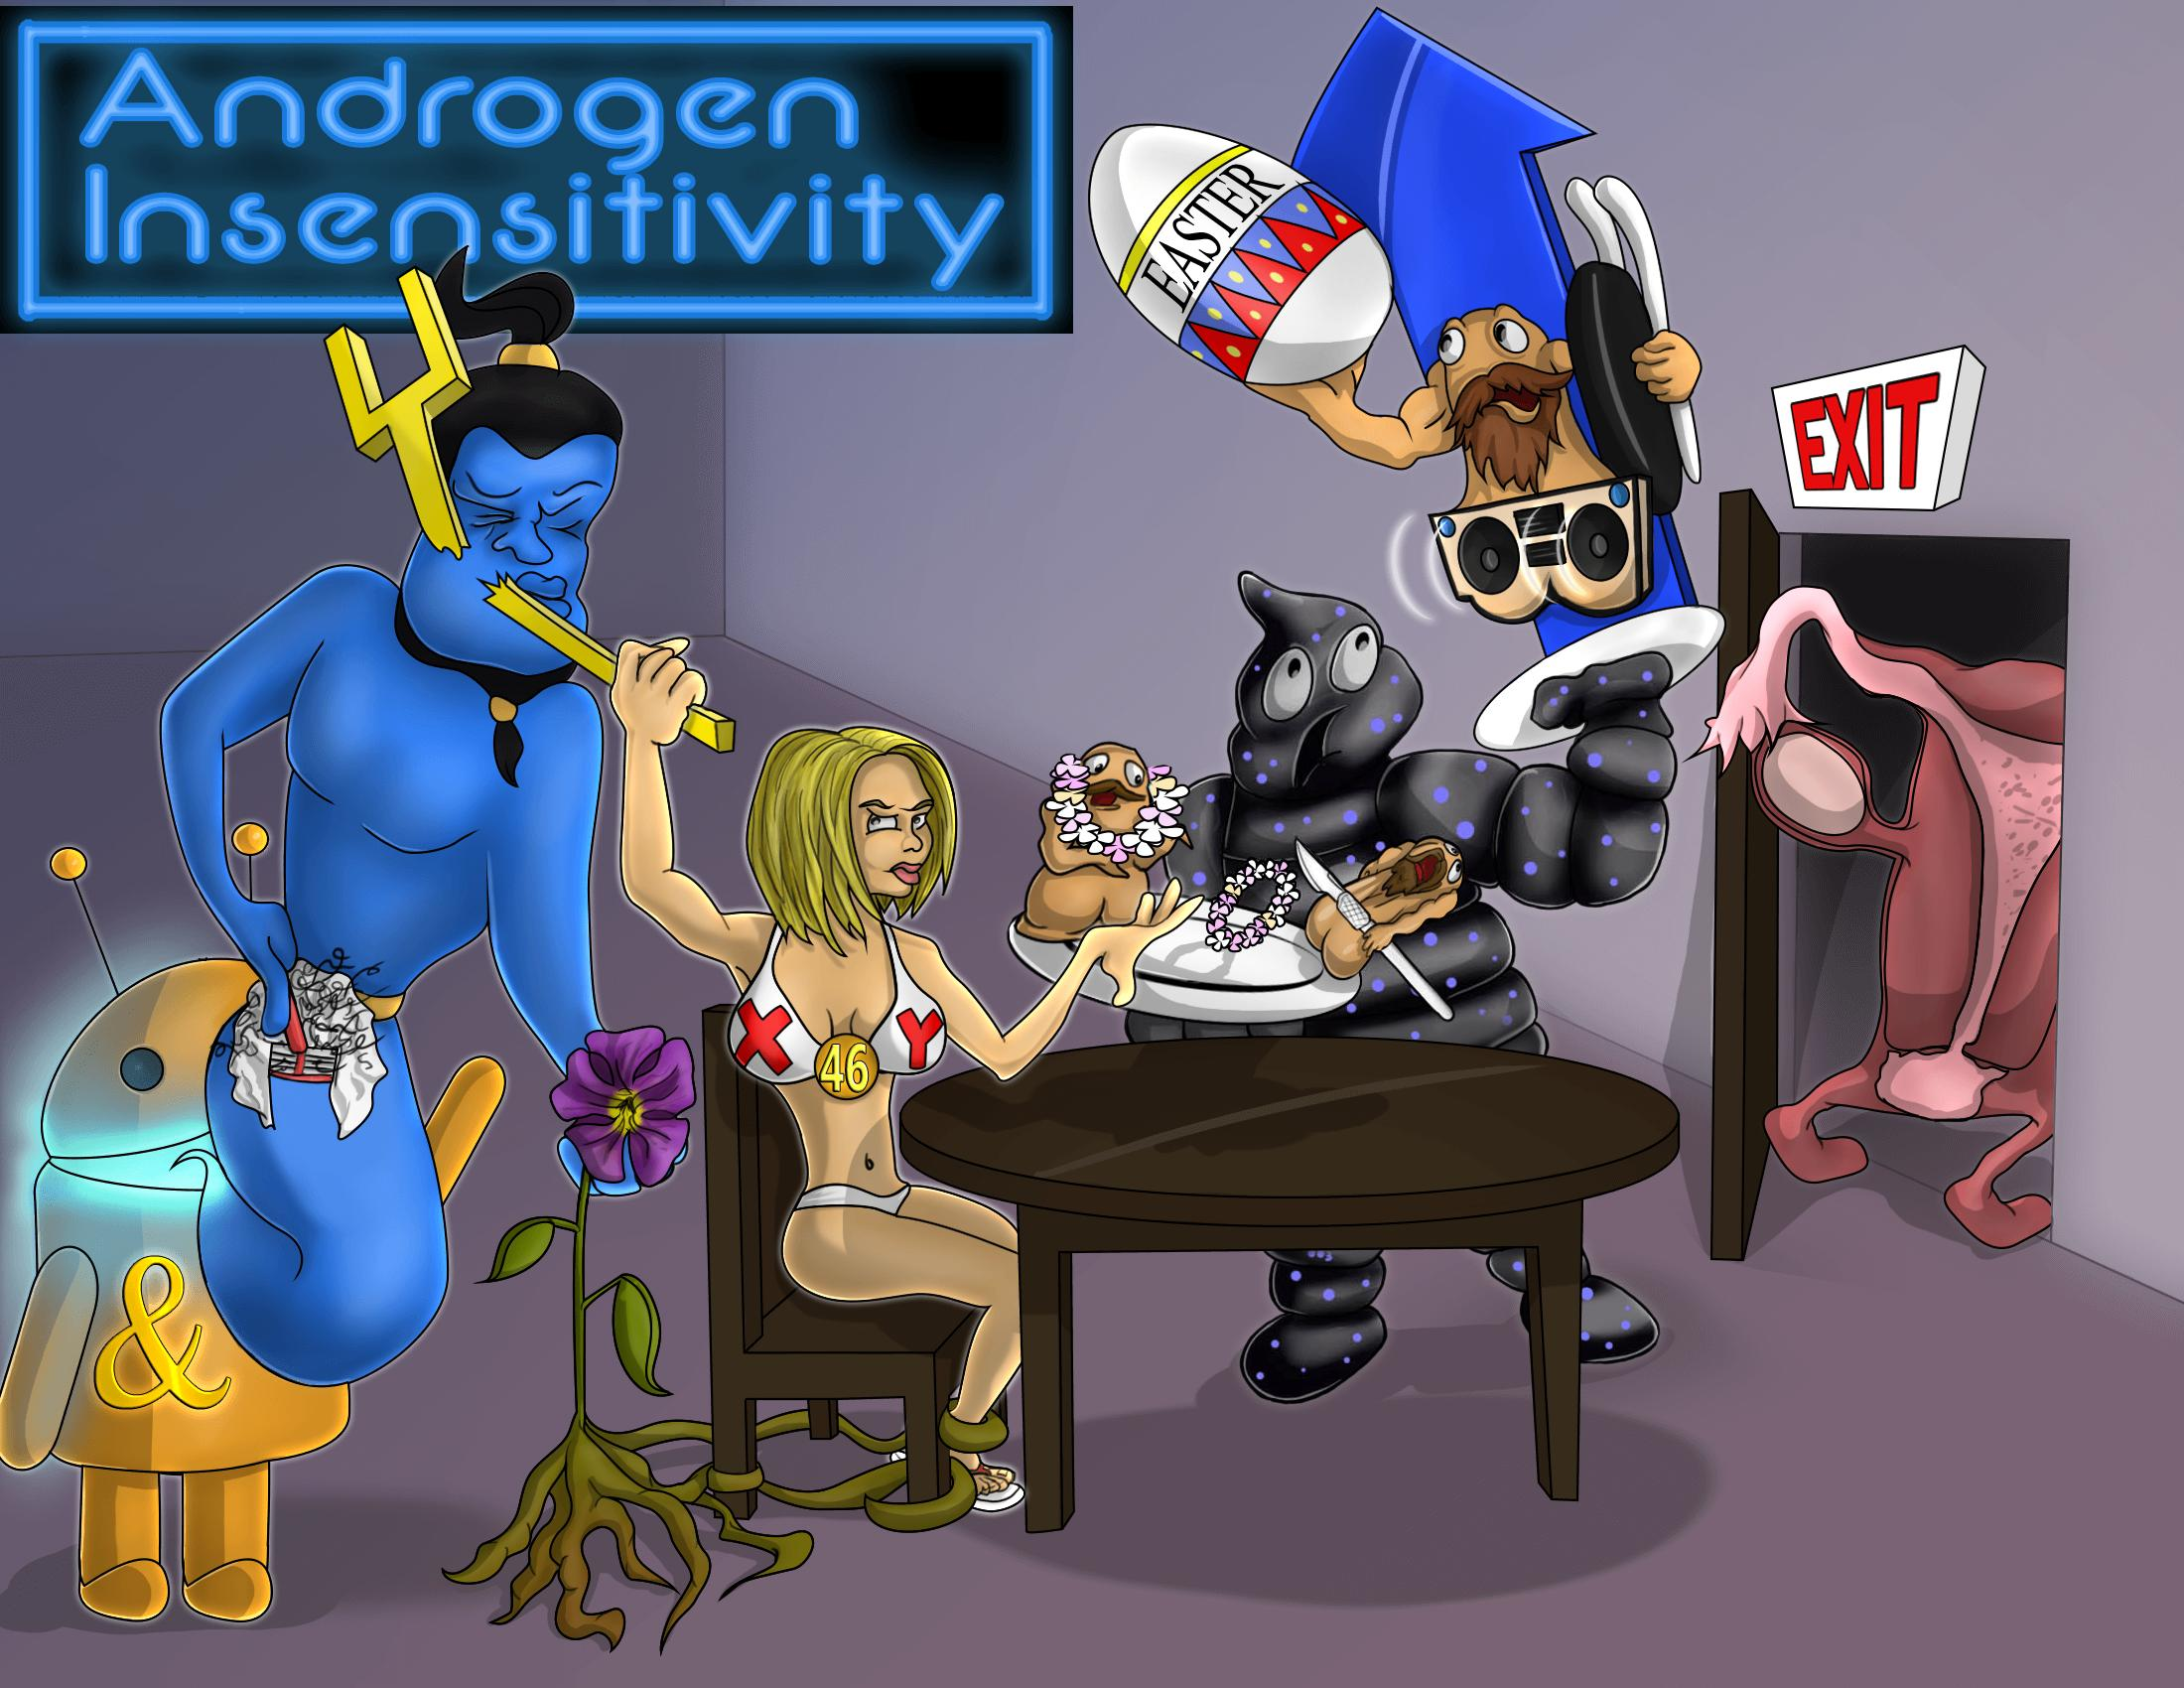 Androgen Insensitivity (Complete)